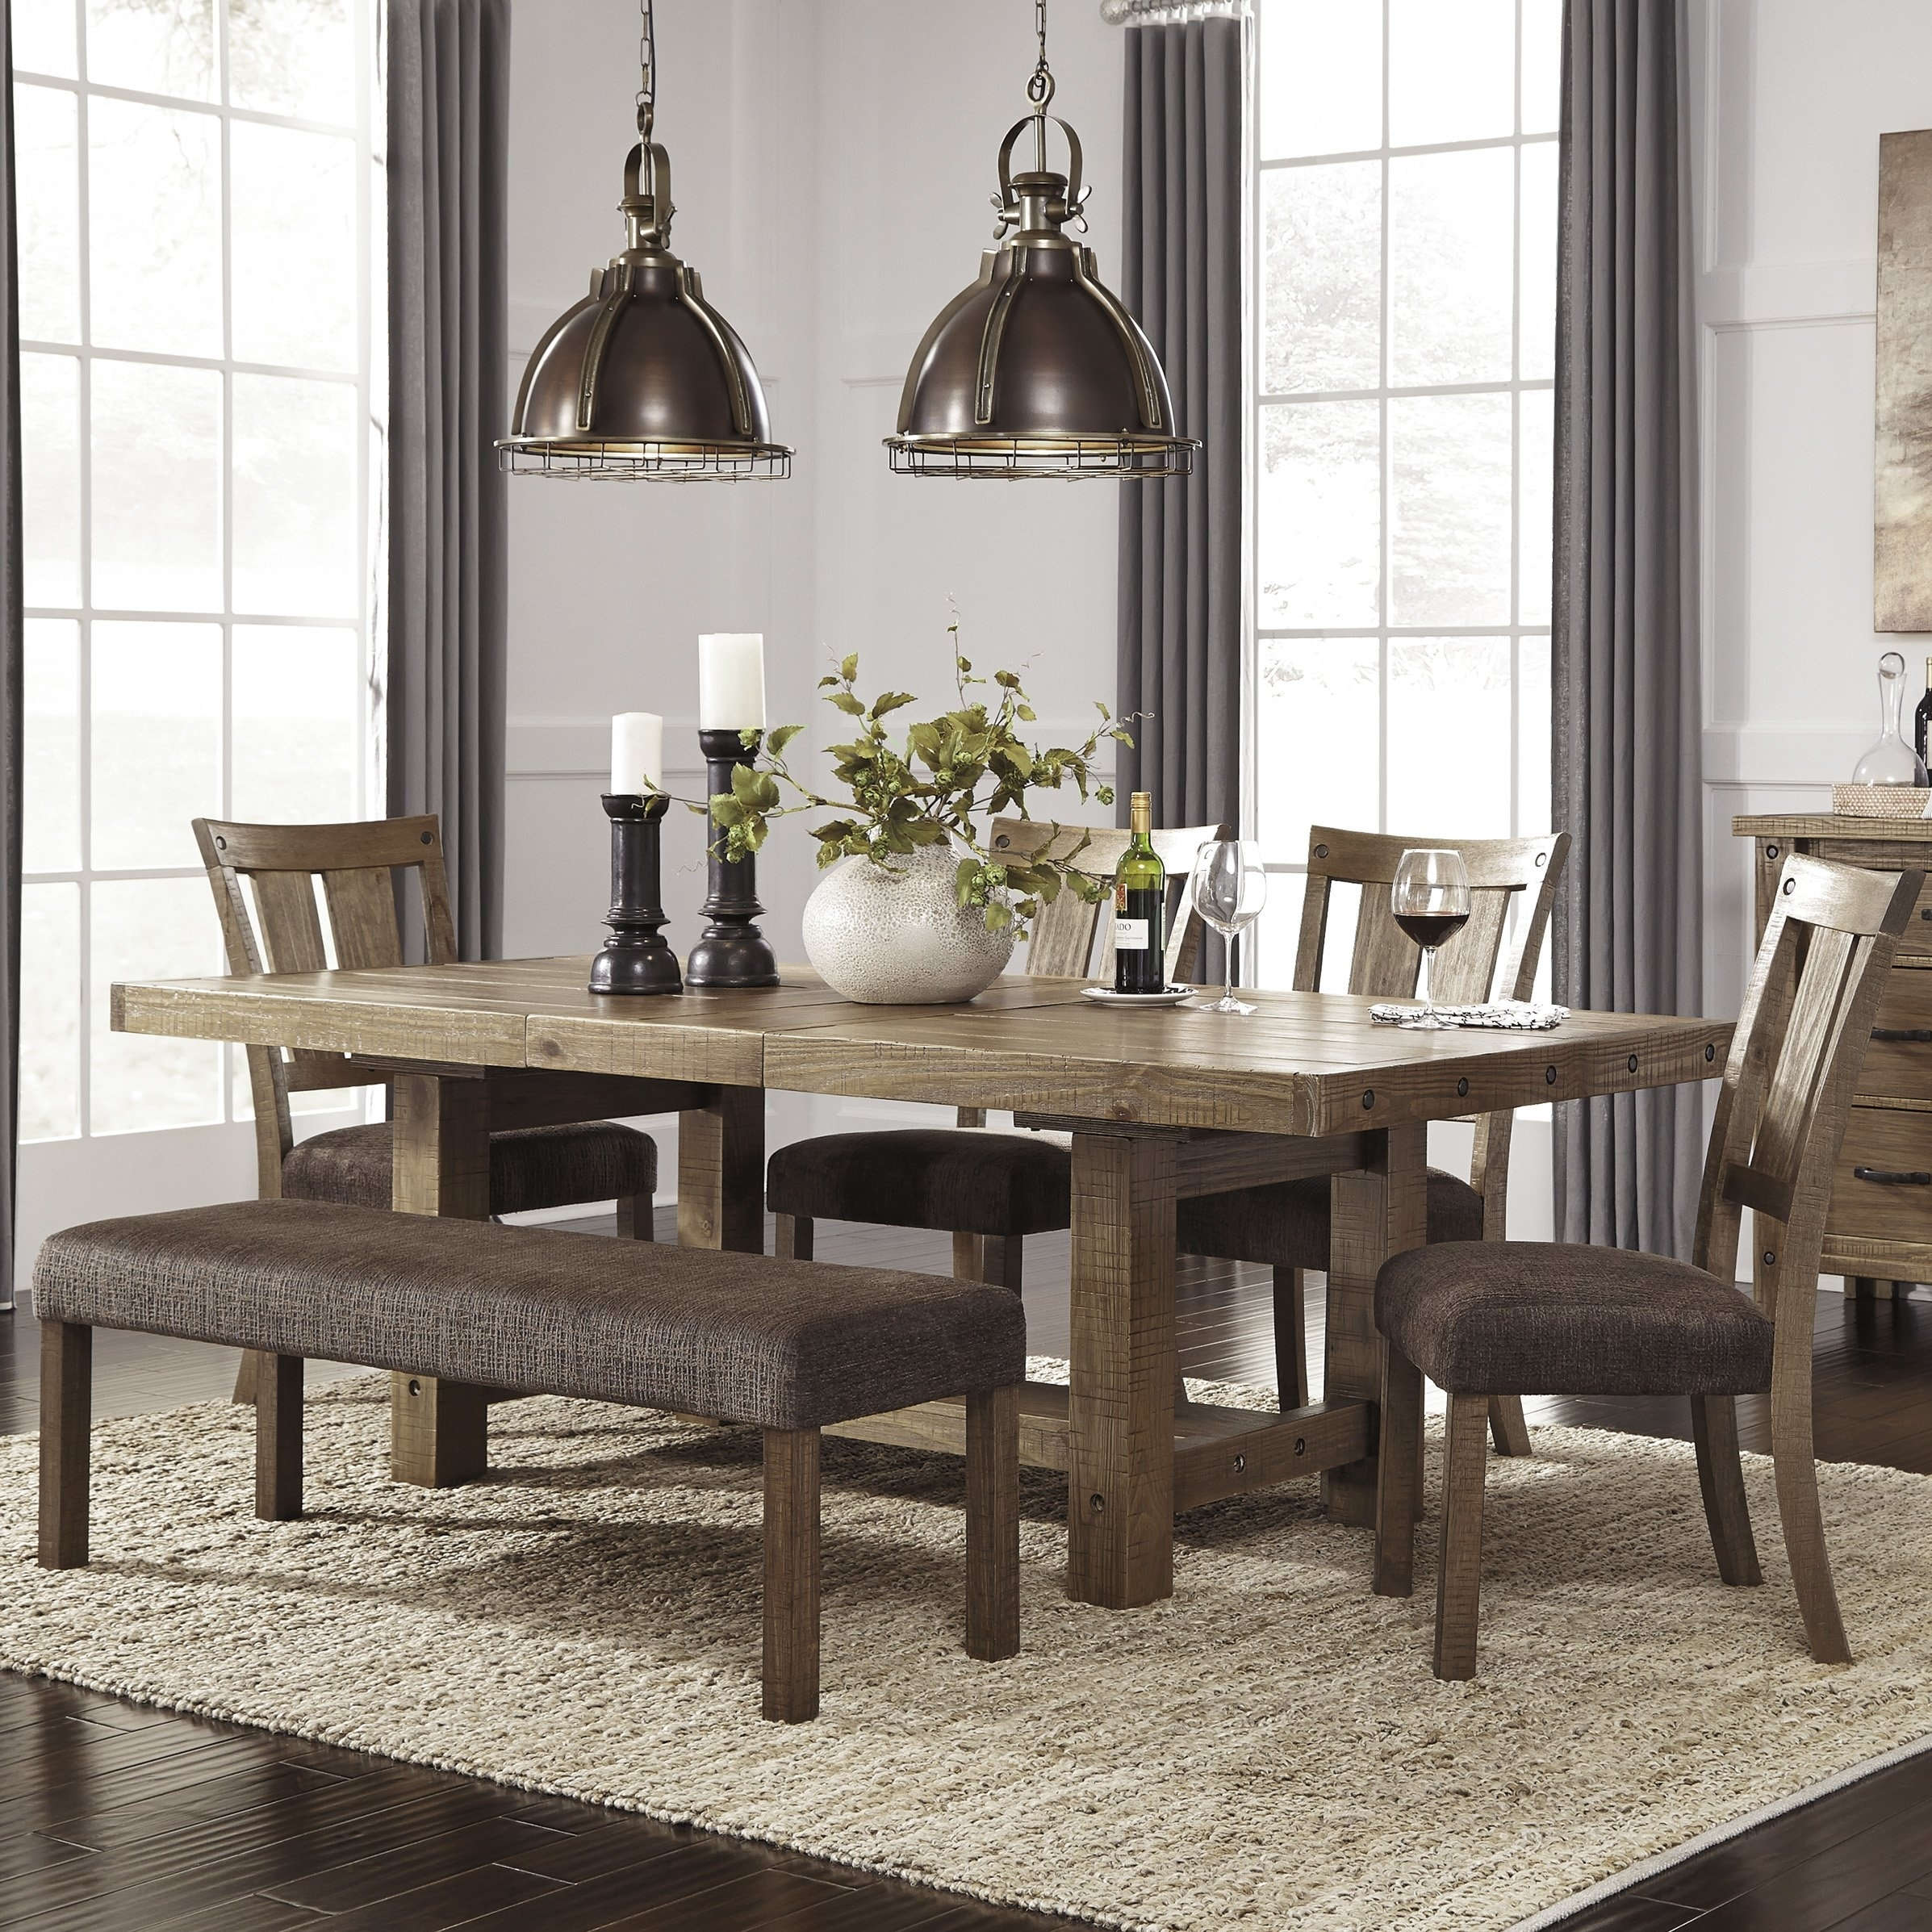 rustic dining chairs - 700×700